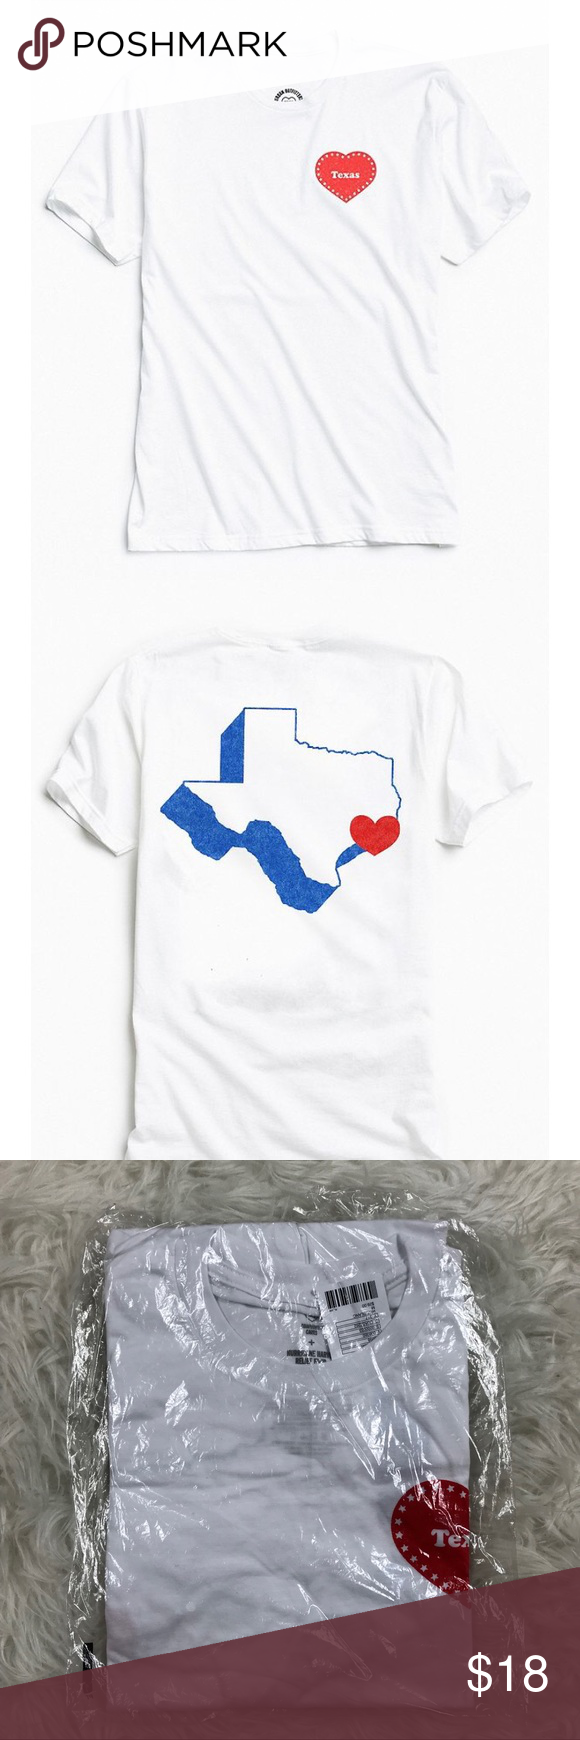 21+ Urban outfitters houston texas ideas in 2021